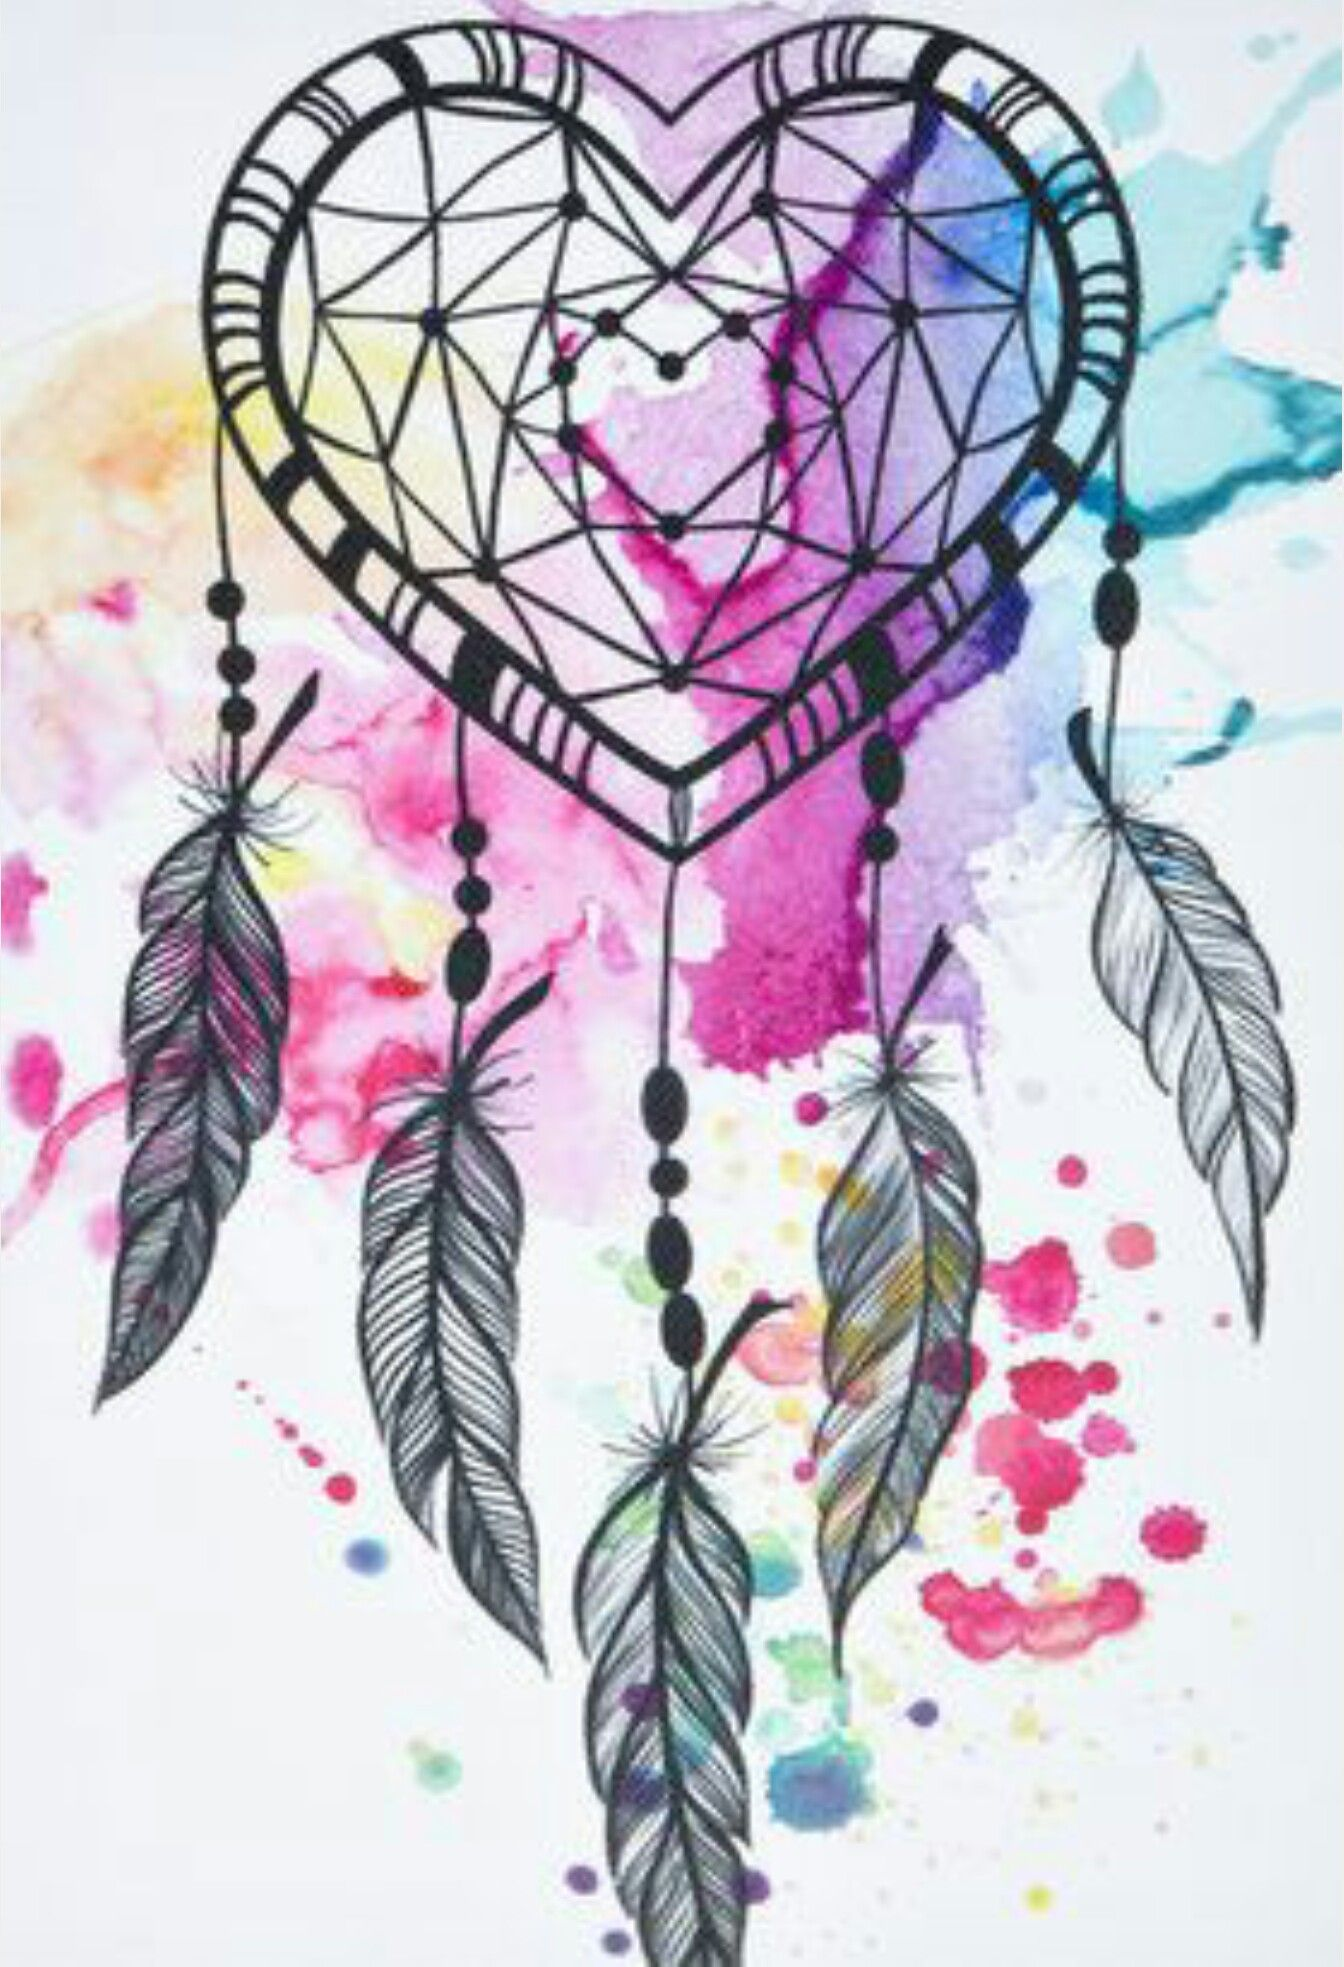 Pin by Vanessa Woods on Dream Catchers in 2019 ...